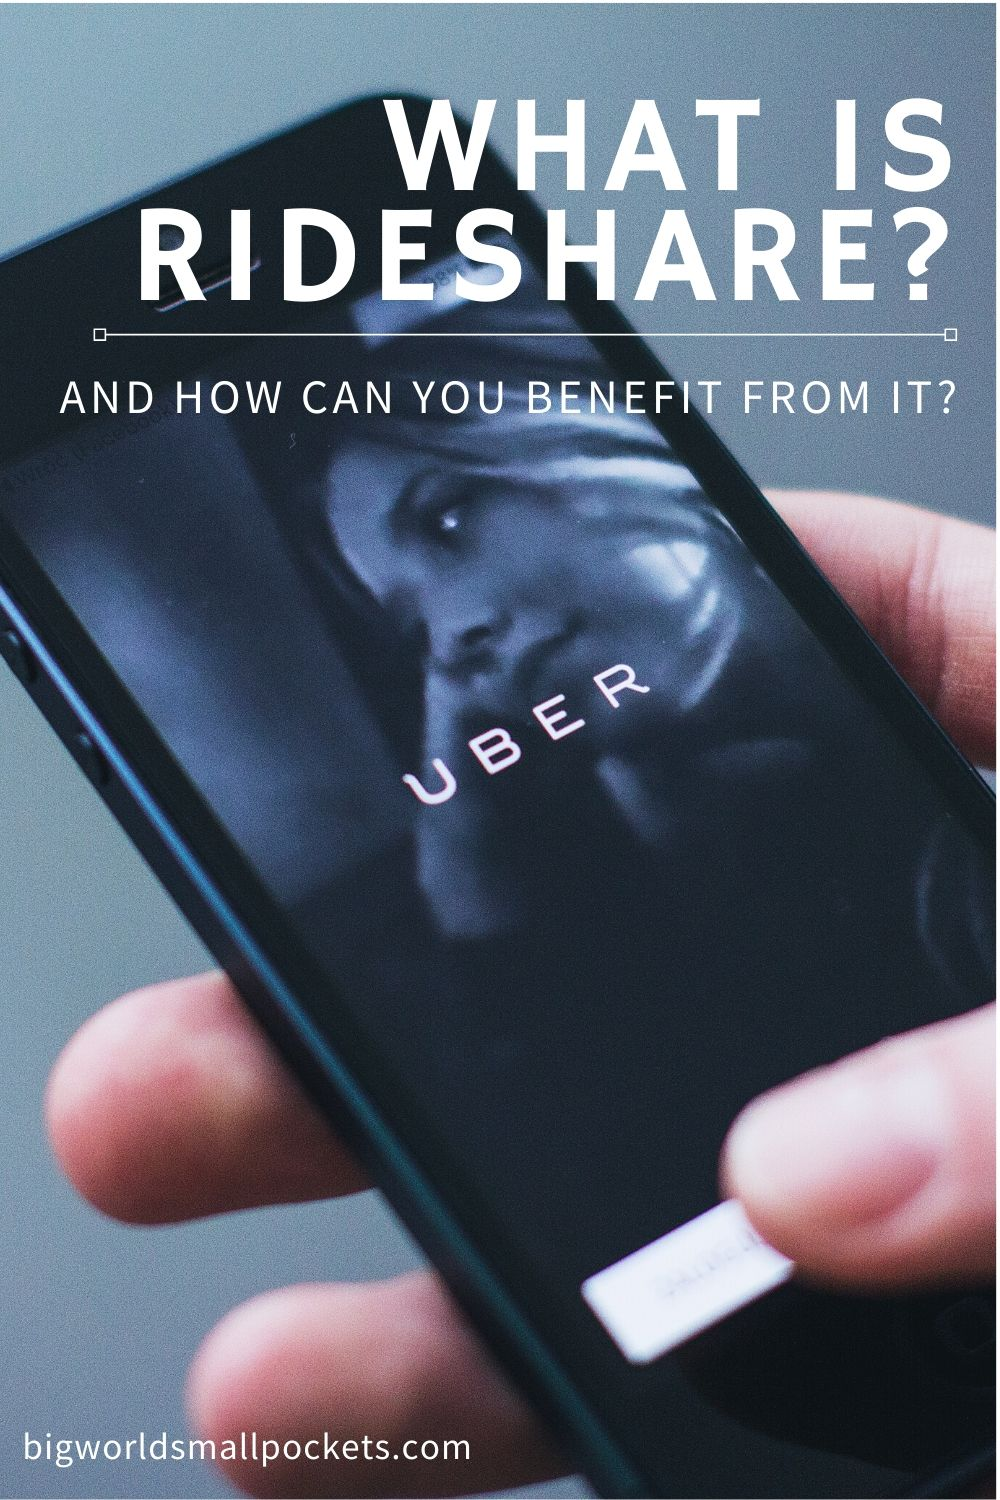 What is Rideshare?